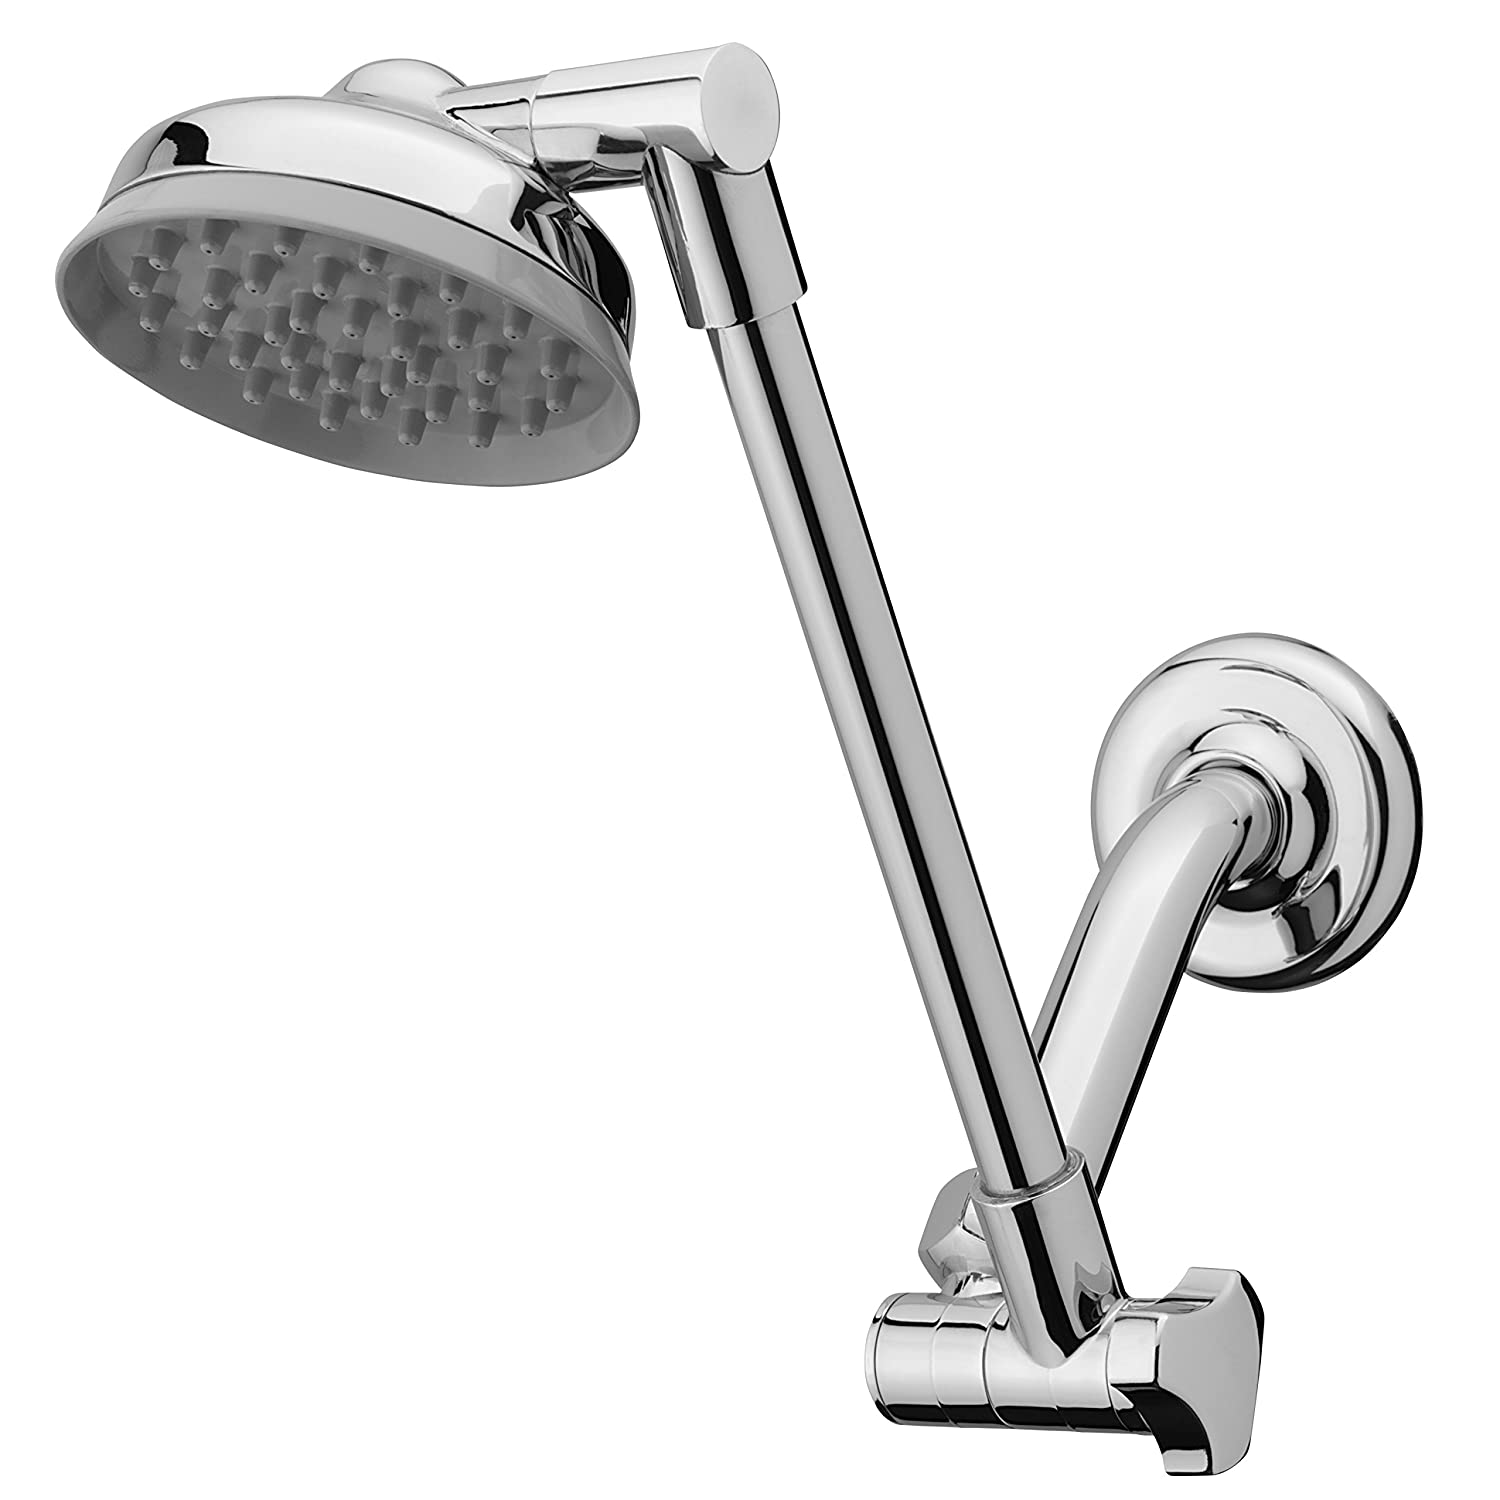 Waterpik JP-140 RainFall Showerhead with Adjustable Arm, Chrome